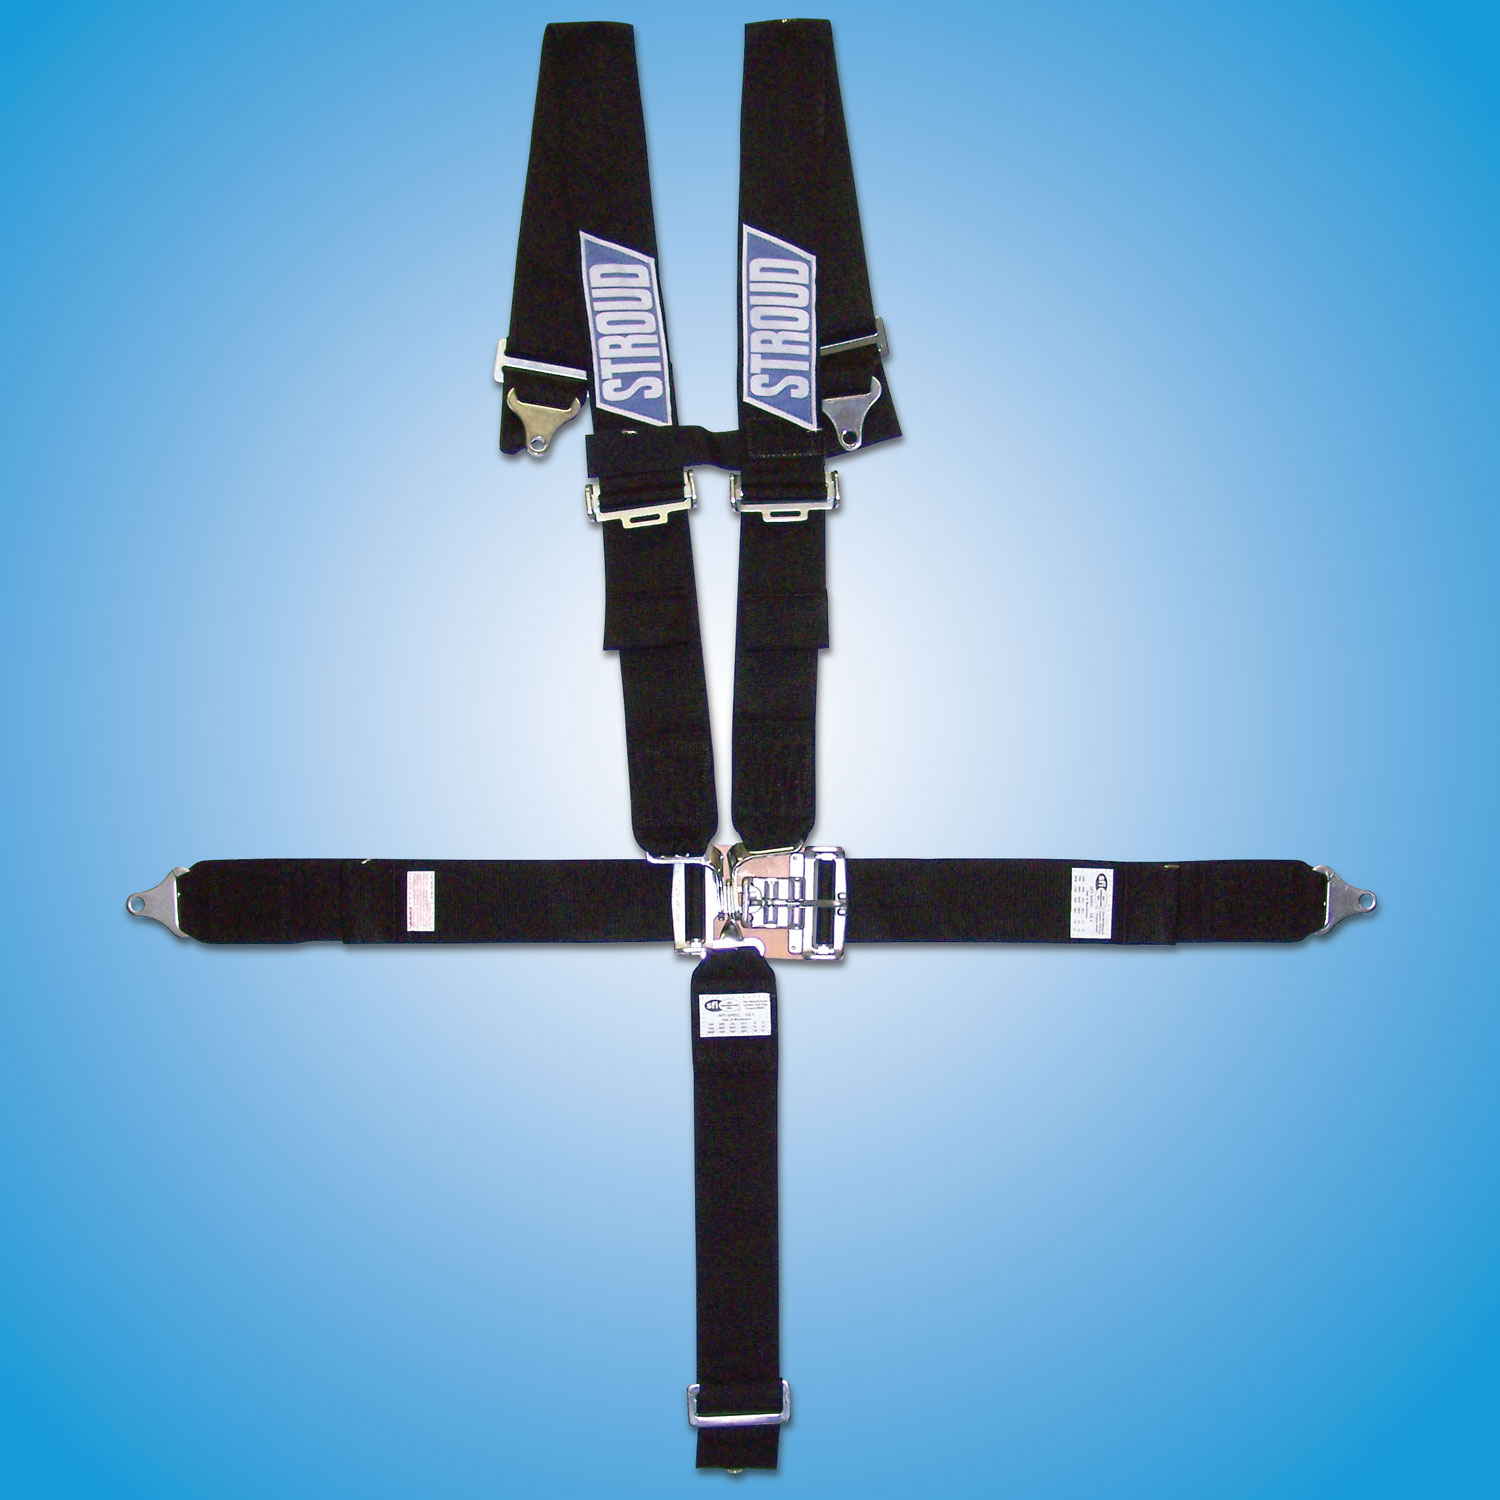 Individual style restraint with Latch and Link  Part #1001 — $120   Dragster style restraint with Latch and Link  Part #1002 — $120   V style restraint with Latch and Link  Part #1003 — $120